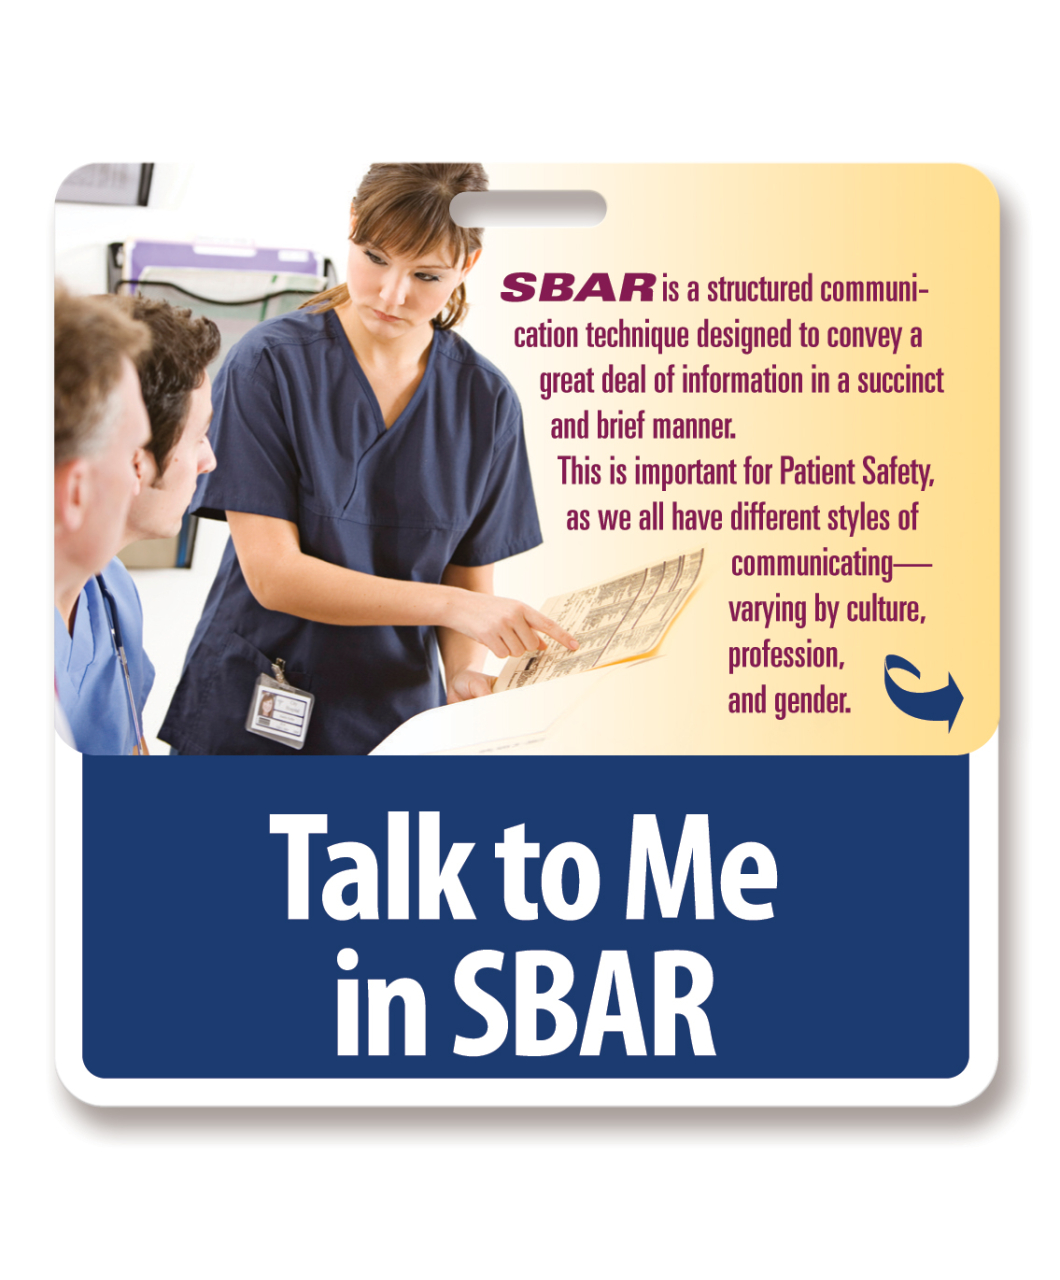 Of Sbar By Reminding Them With Our Unique Sbar Peek A Boo Card